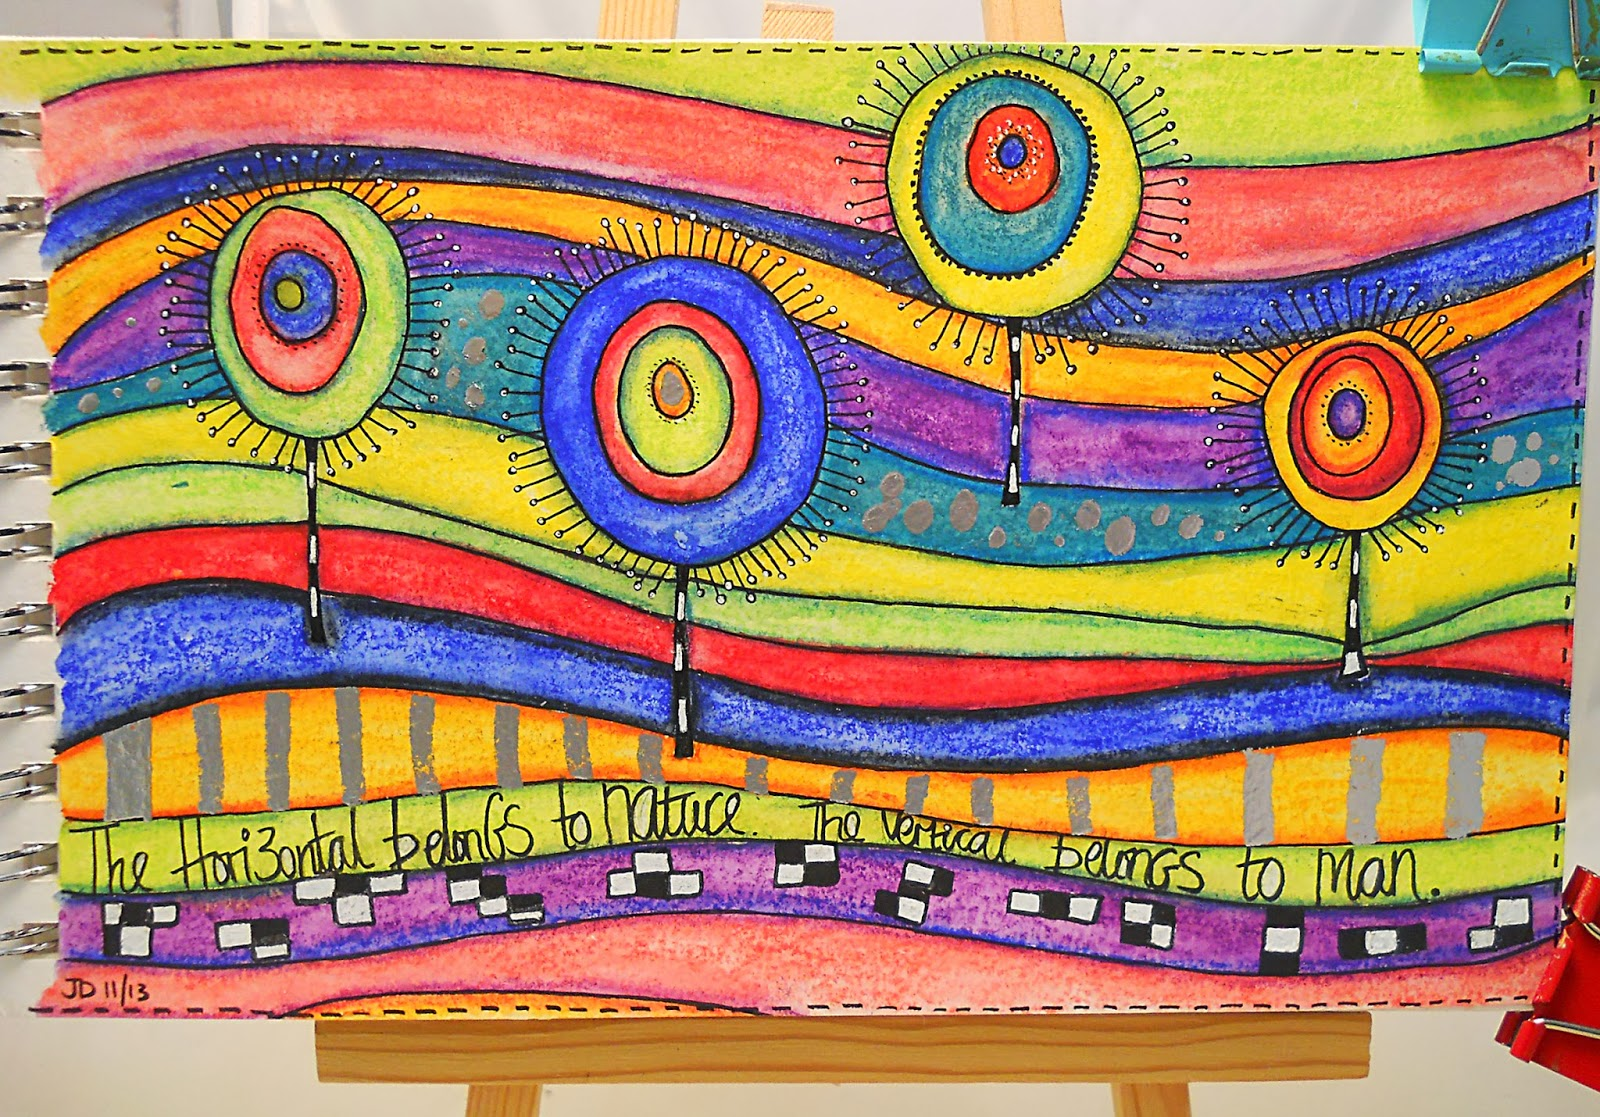 a sprinkle of imagination: A tribute to Hundertwasser.